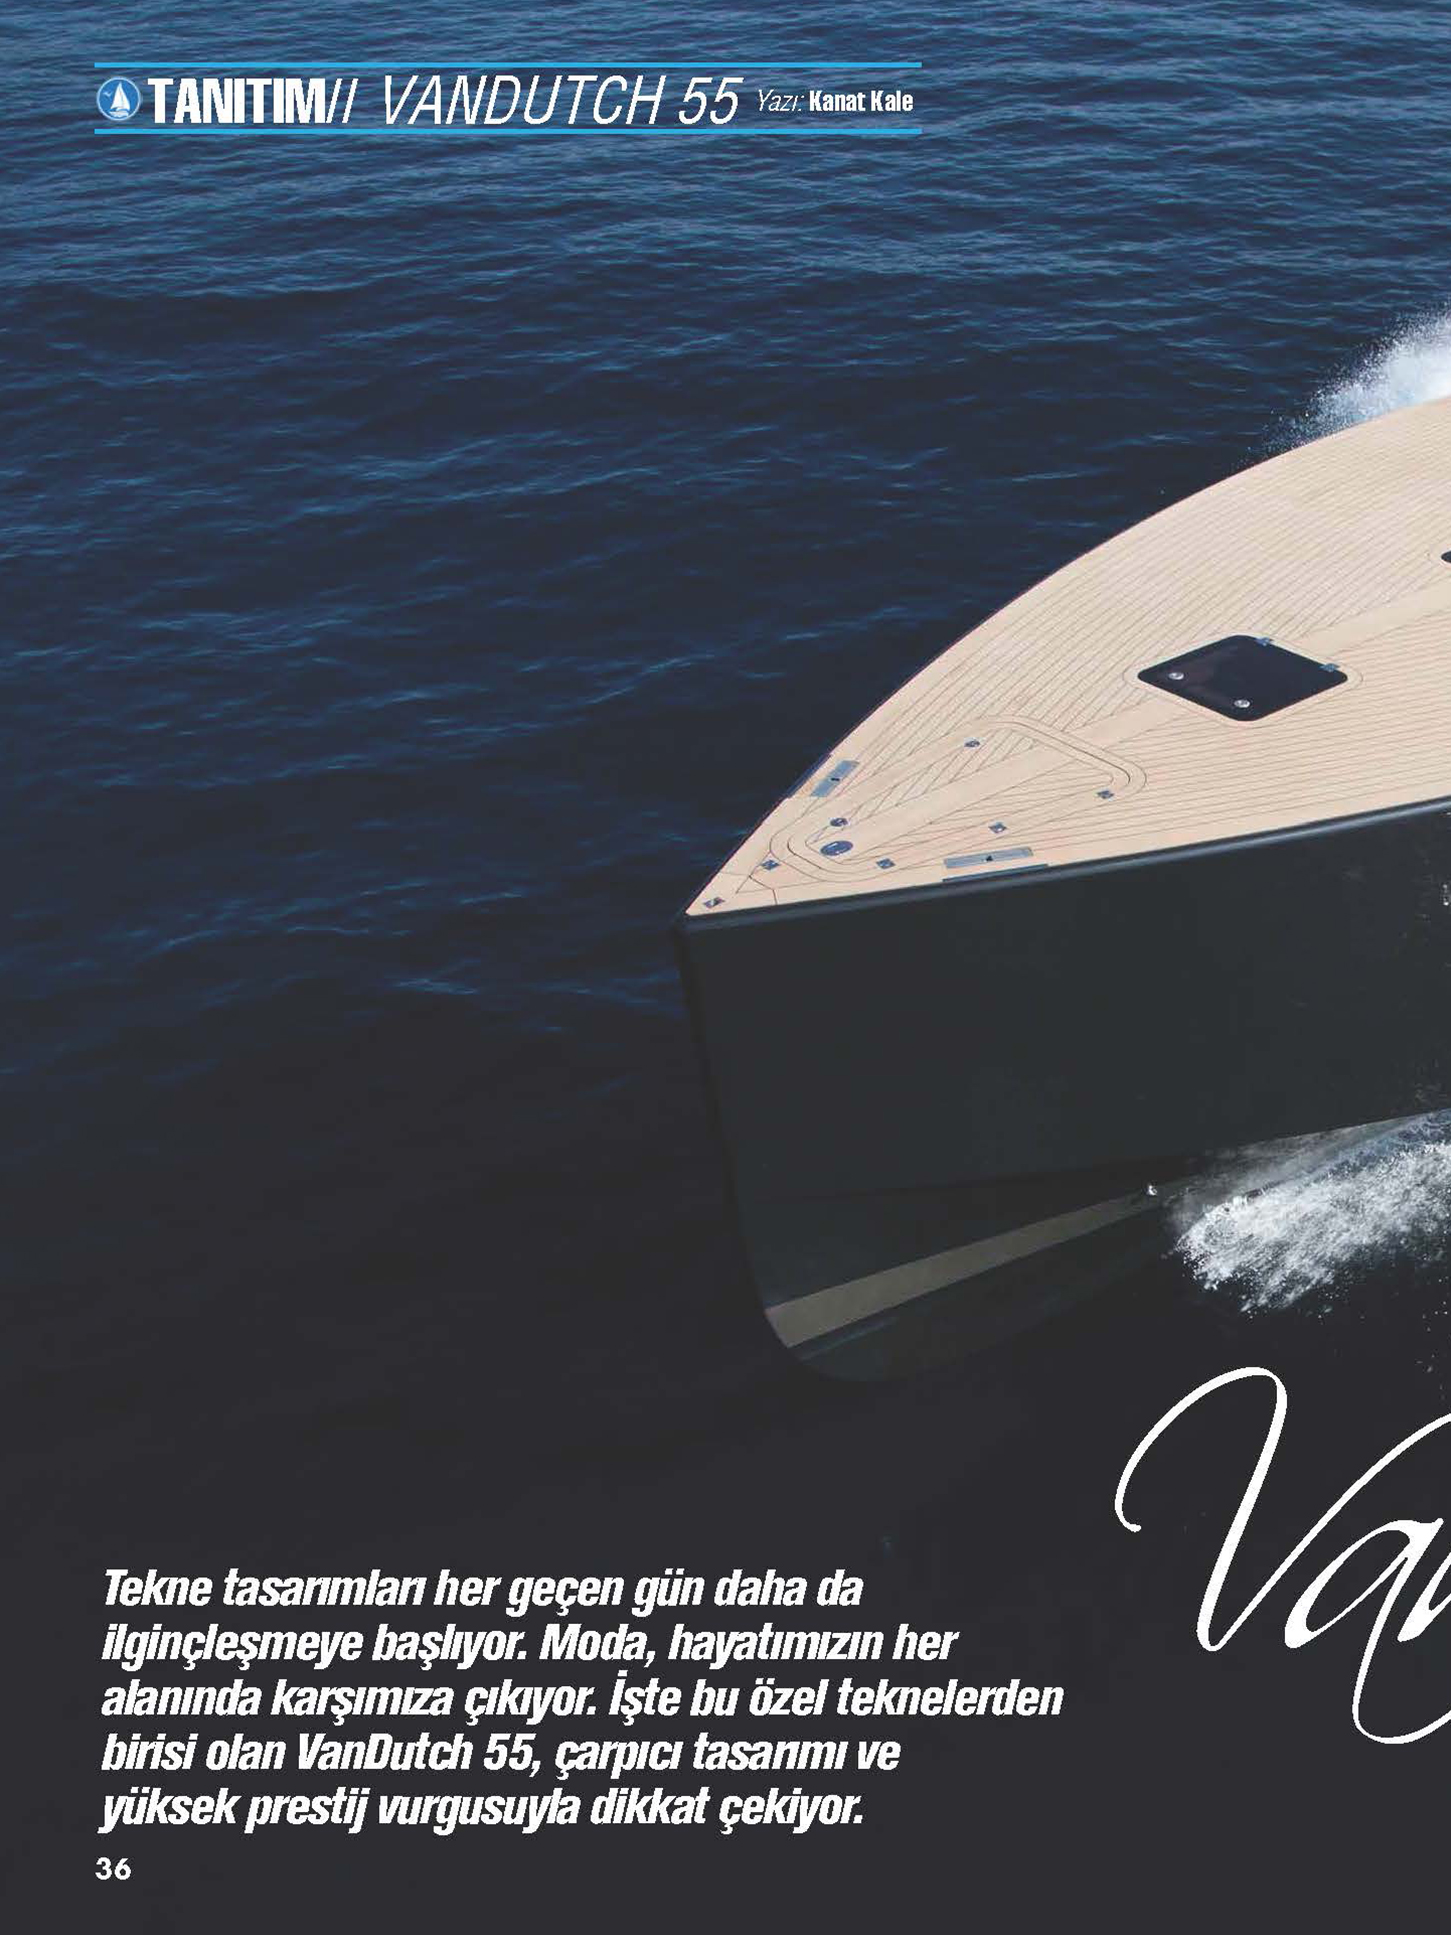 boat-and-yacht-01-225x300